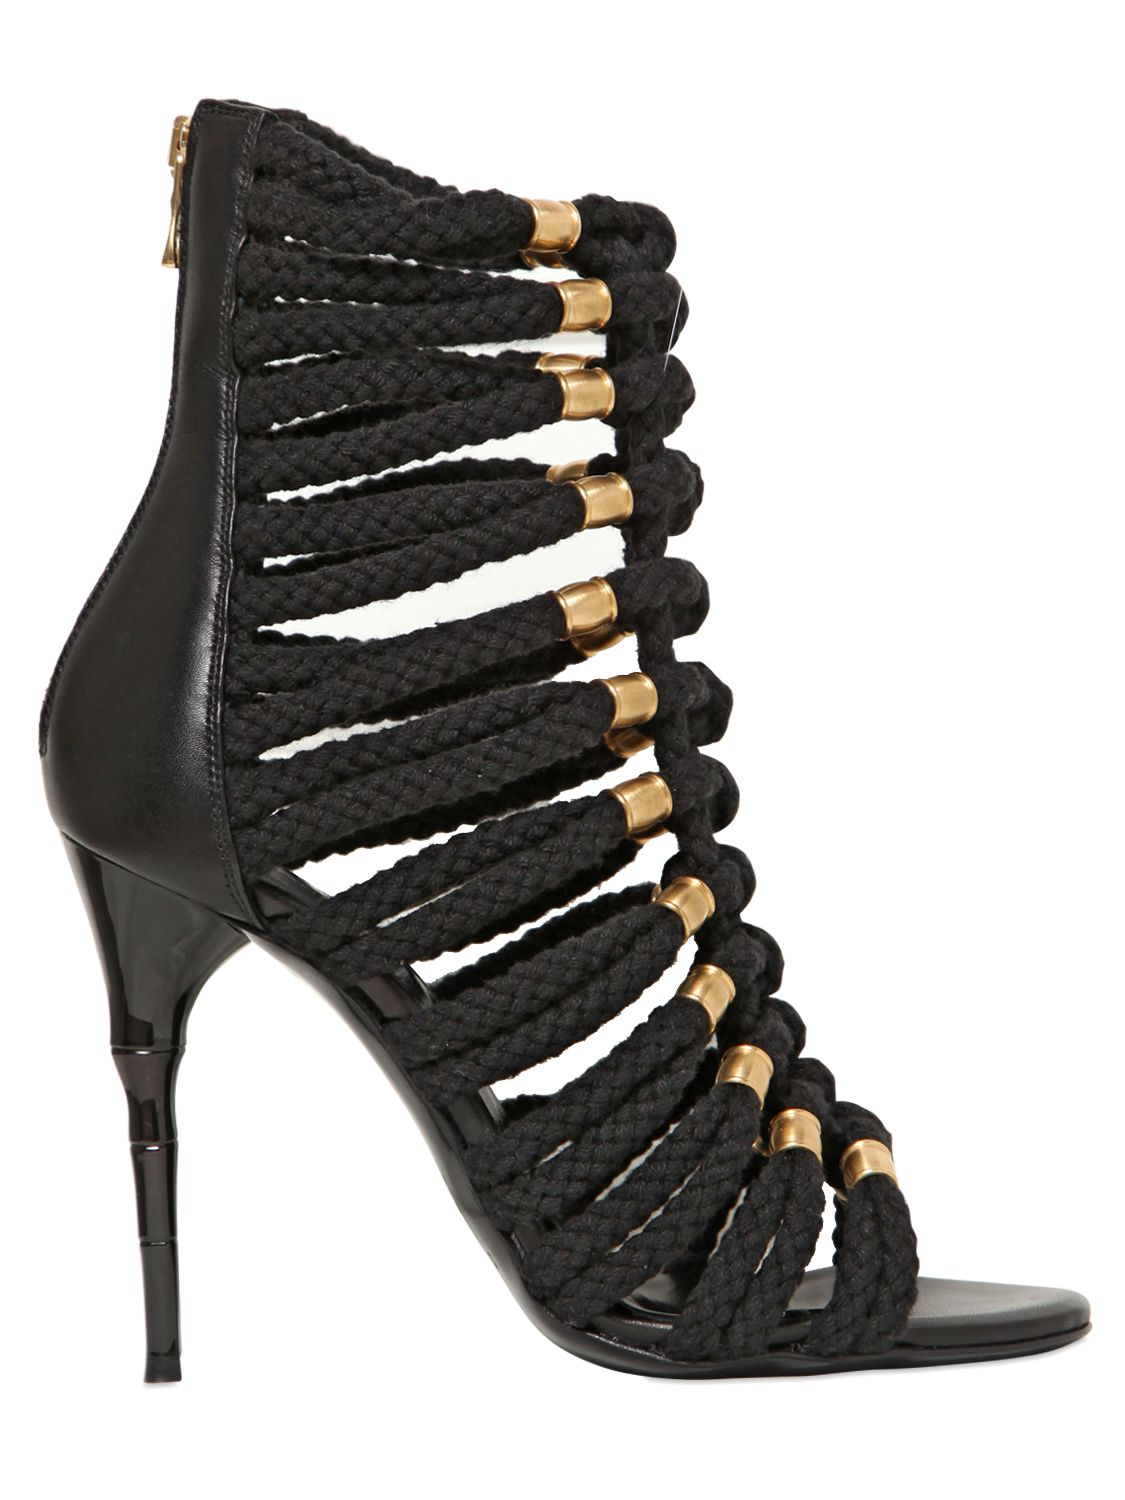 Black sandals Balmain Buy Cheap Choice From China Cheap Price Online Cheap Online I29pYMCx